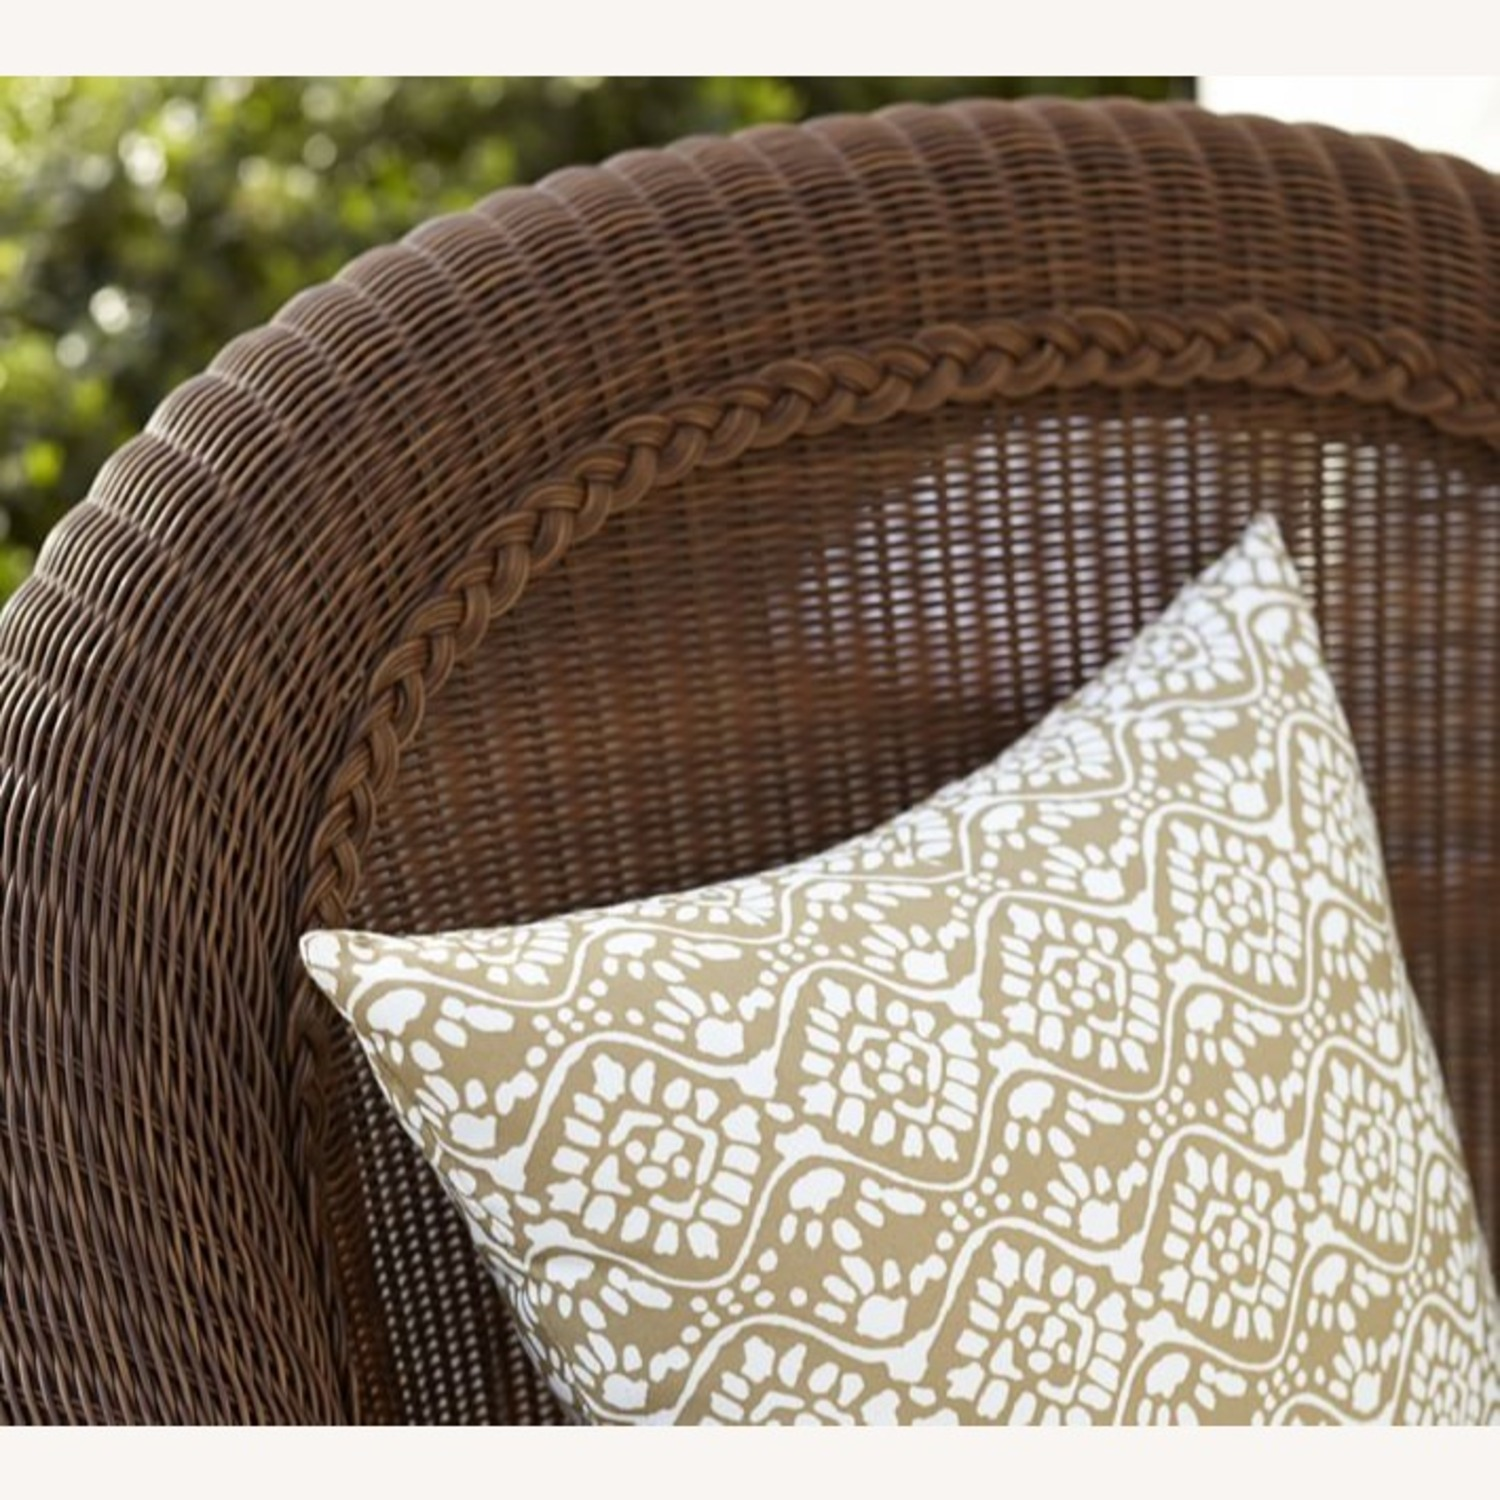 Pottery Barn Palmetto All-Weather Wicker Chair - image-2